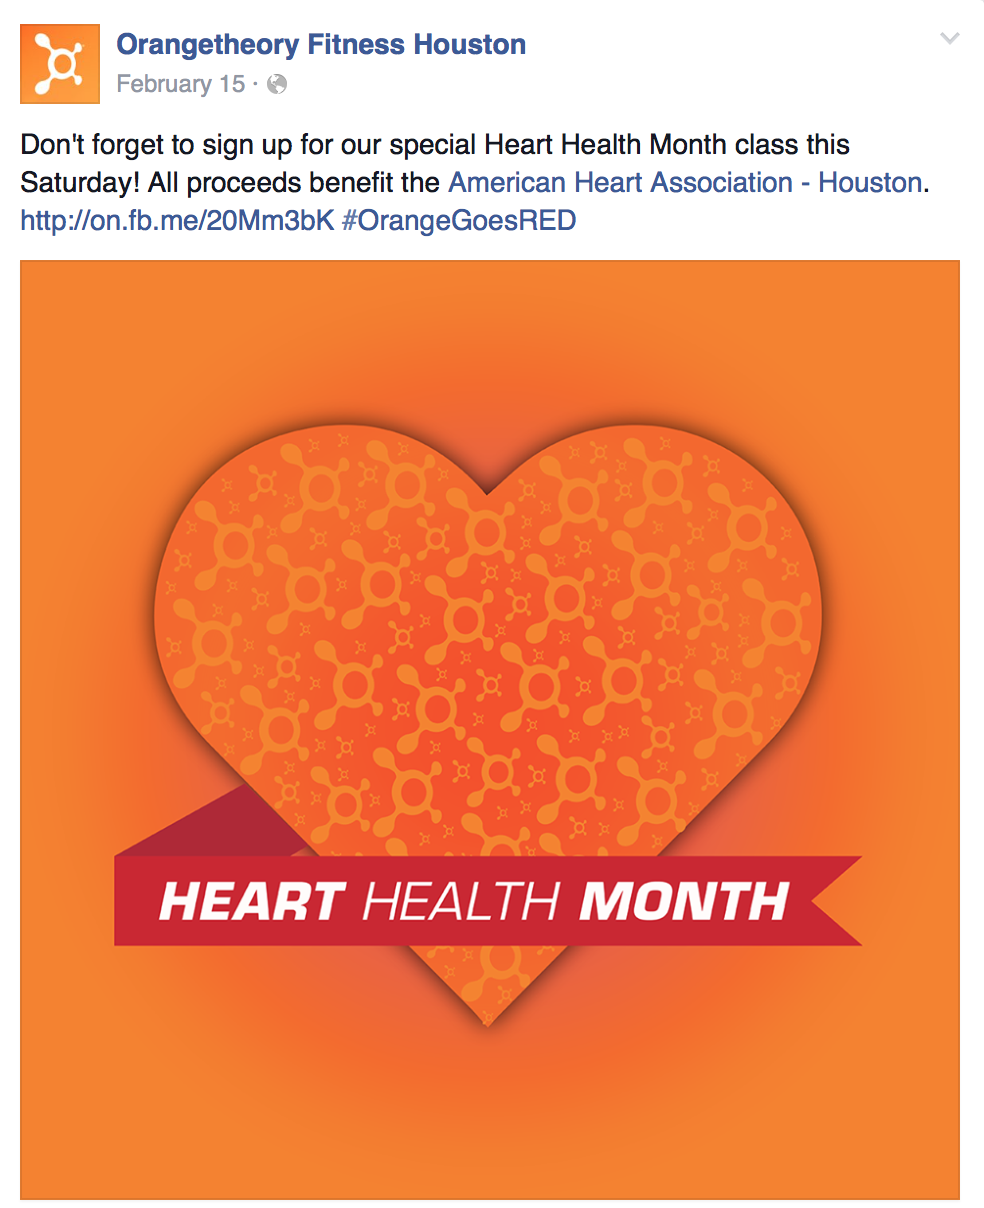 Orangetheory Fitness Goes Red!